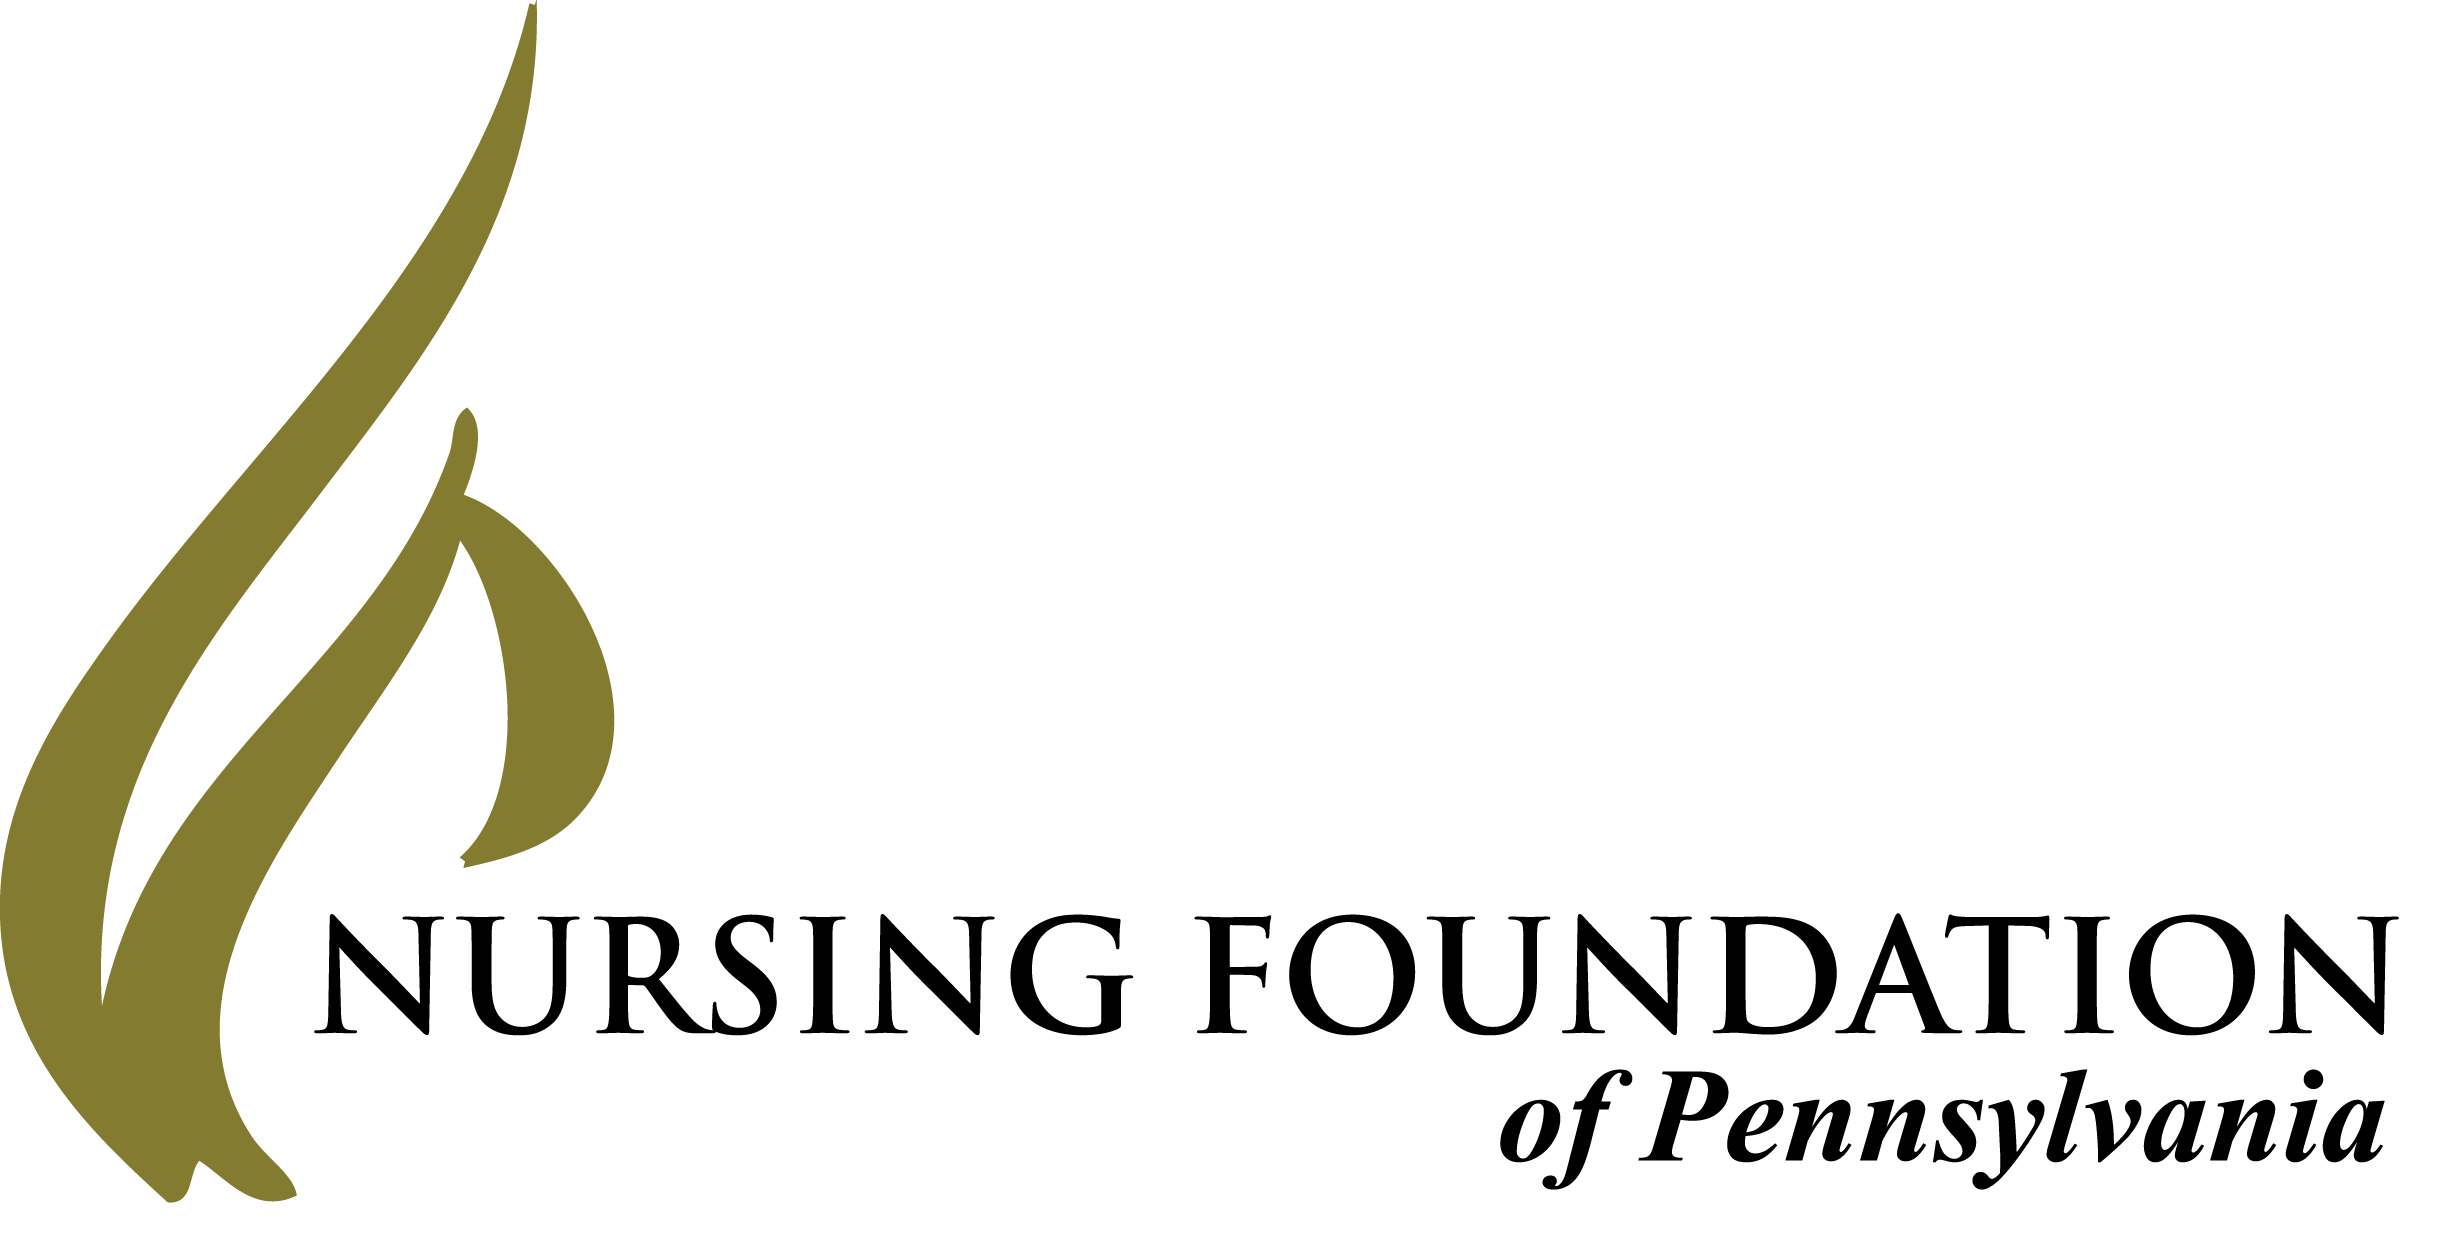 Nursing Foundation of Pennsylvania